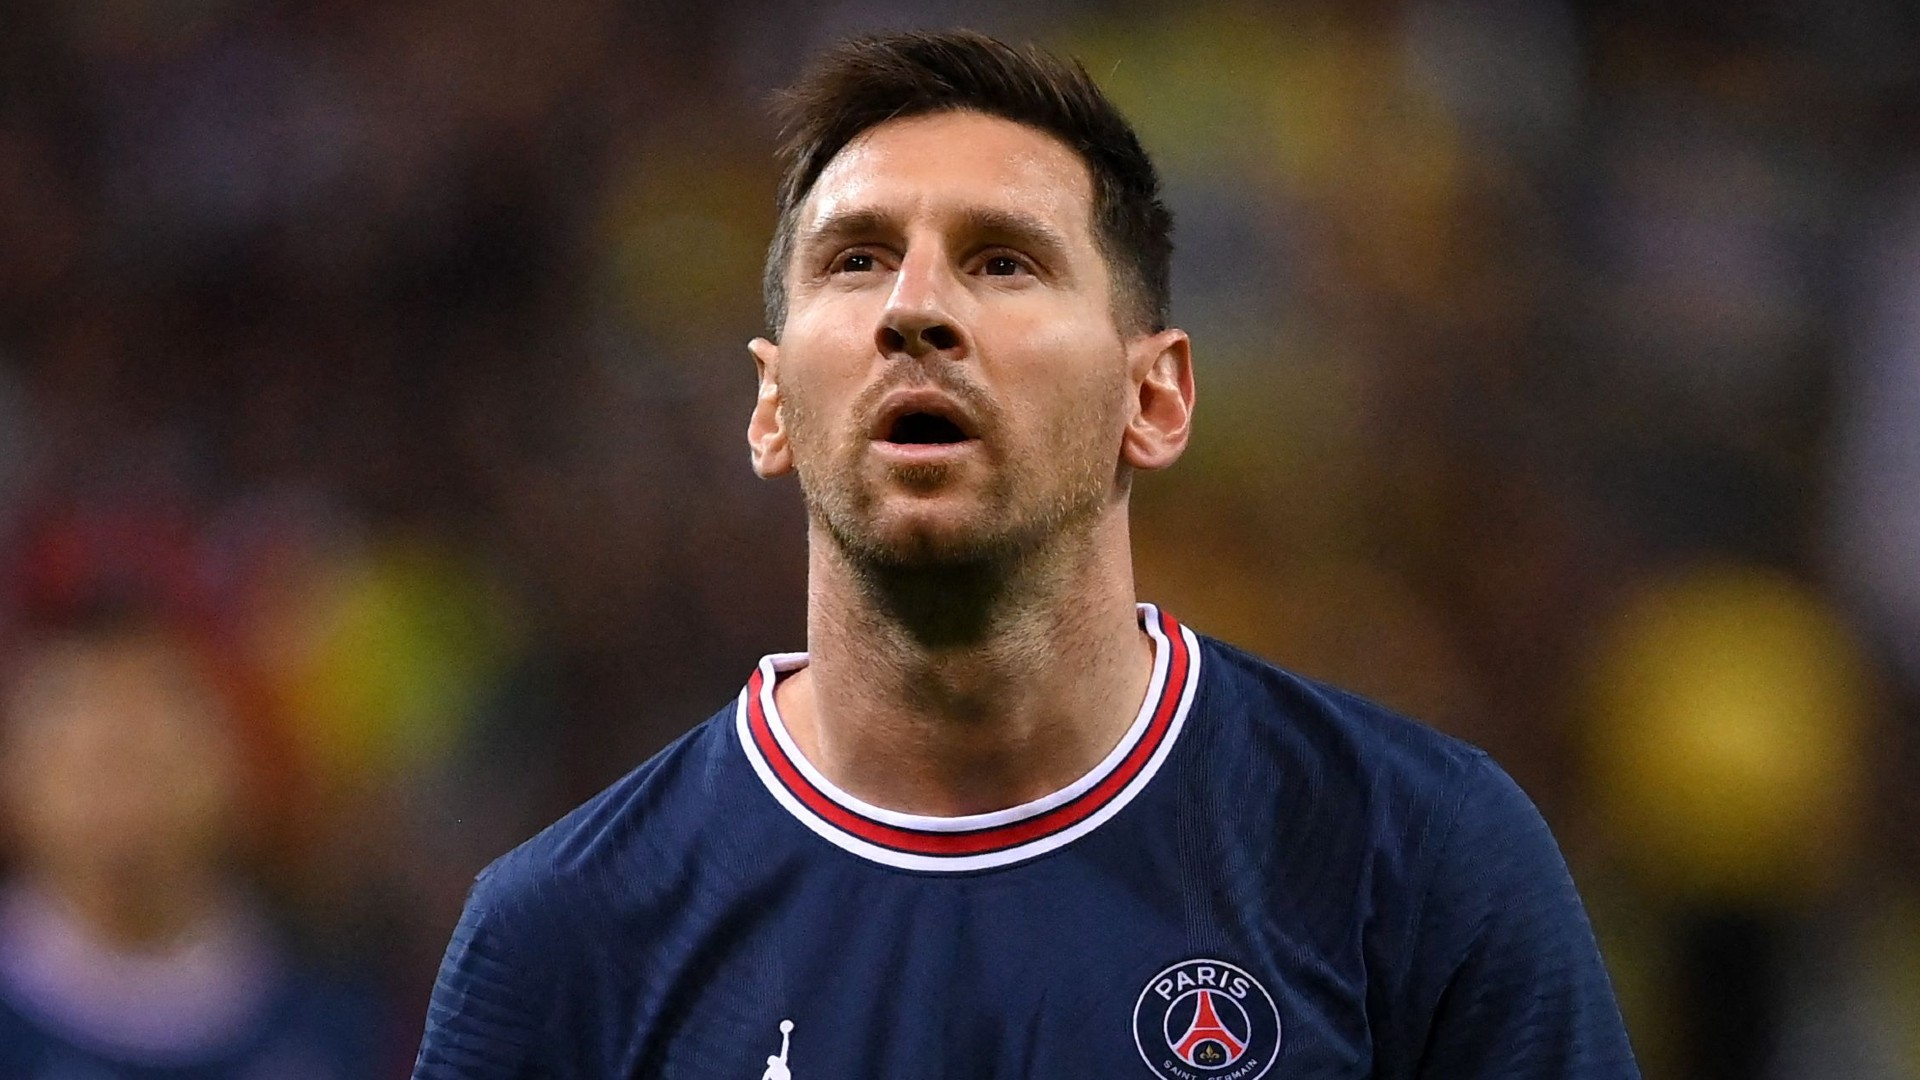 FIFA 22 ratings: Messi, Neymar and PSG's best players revealed